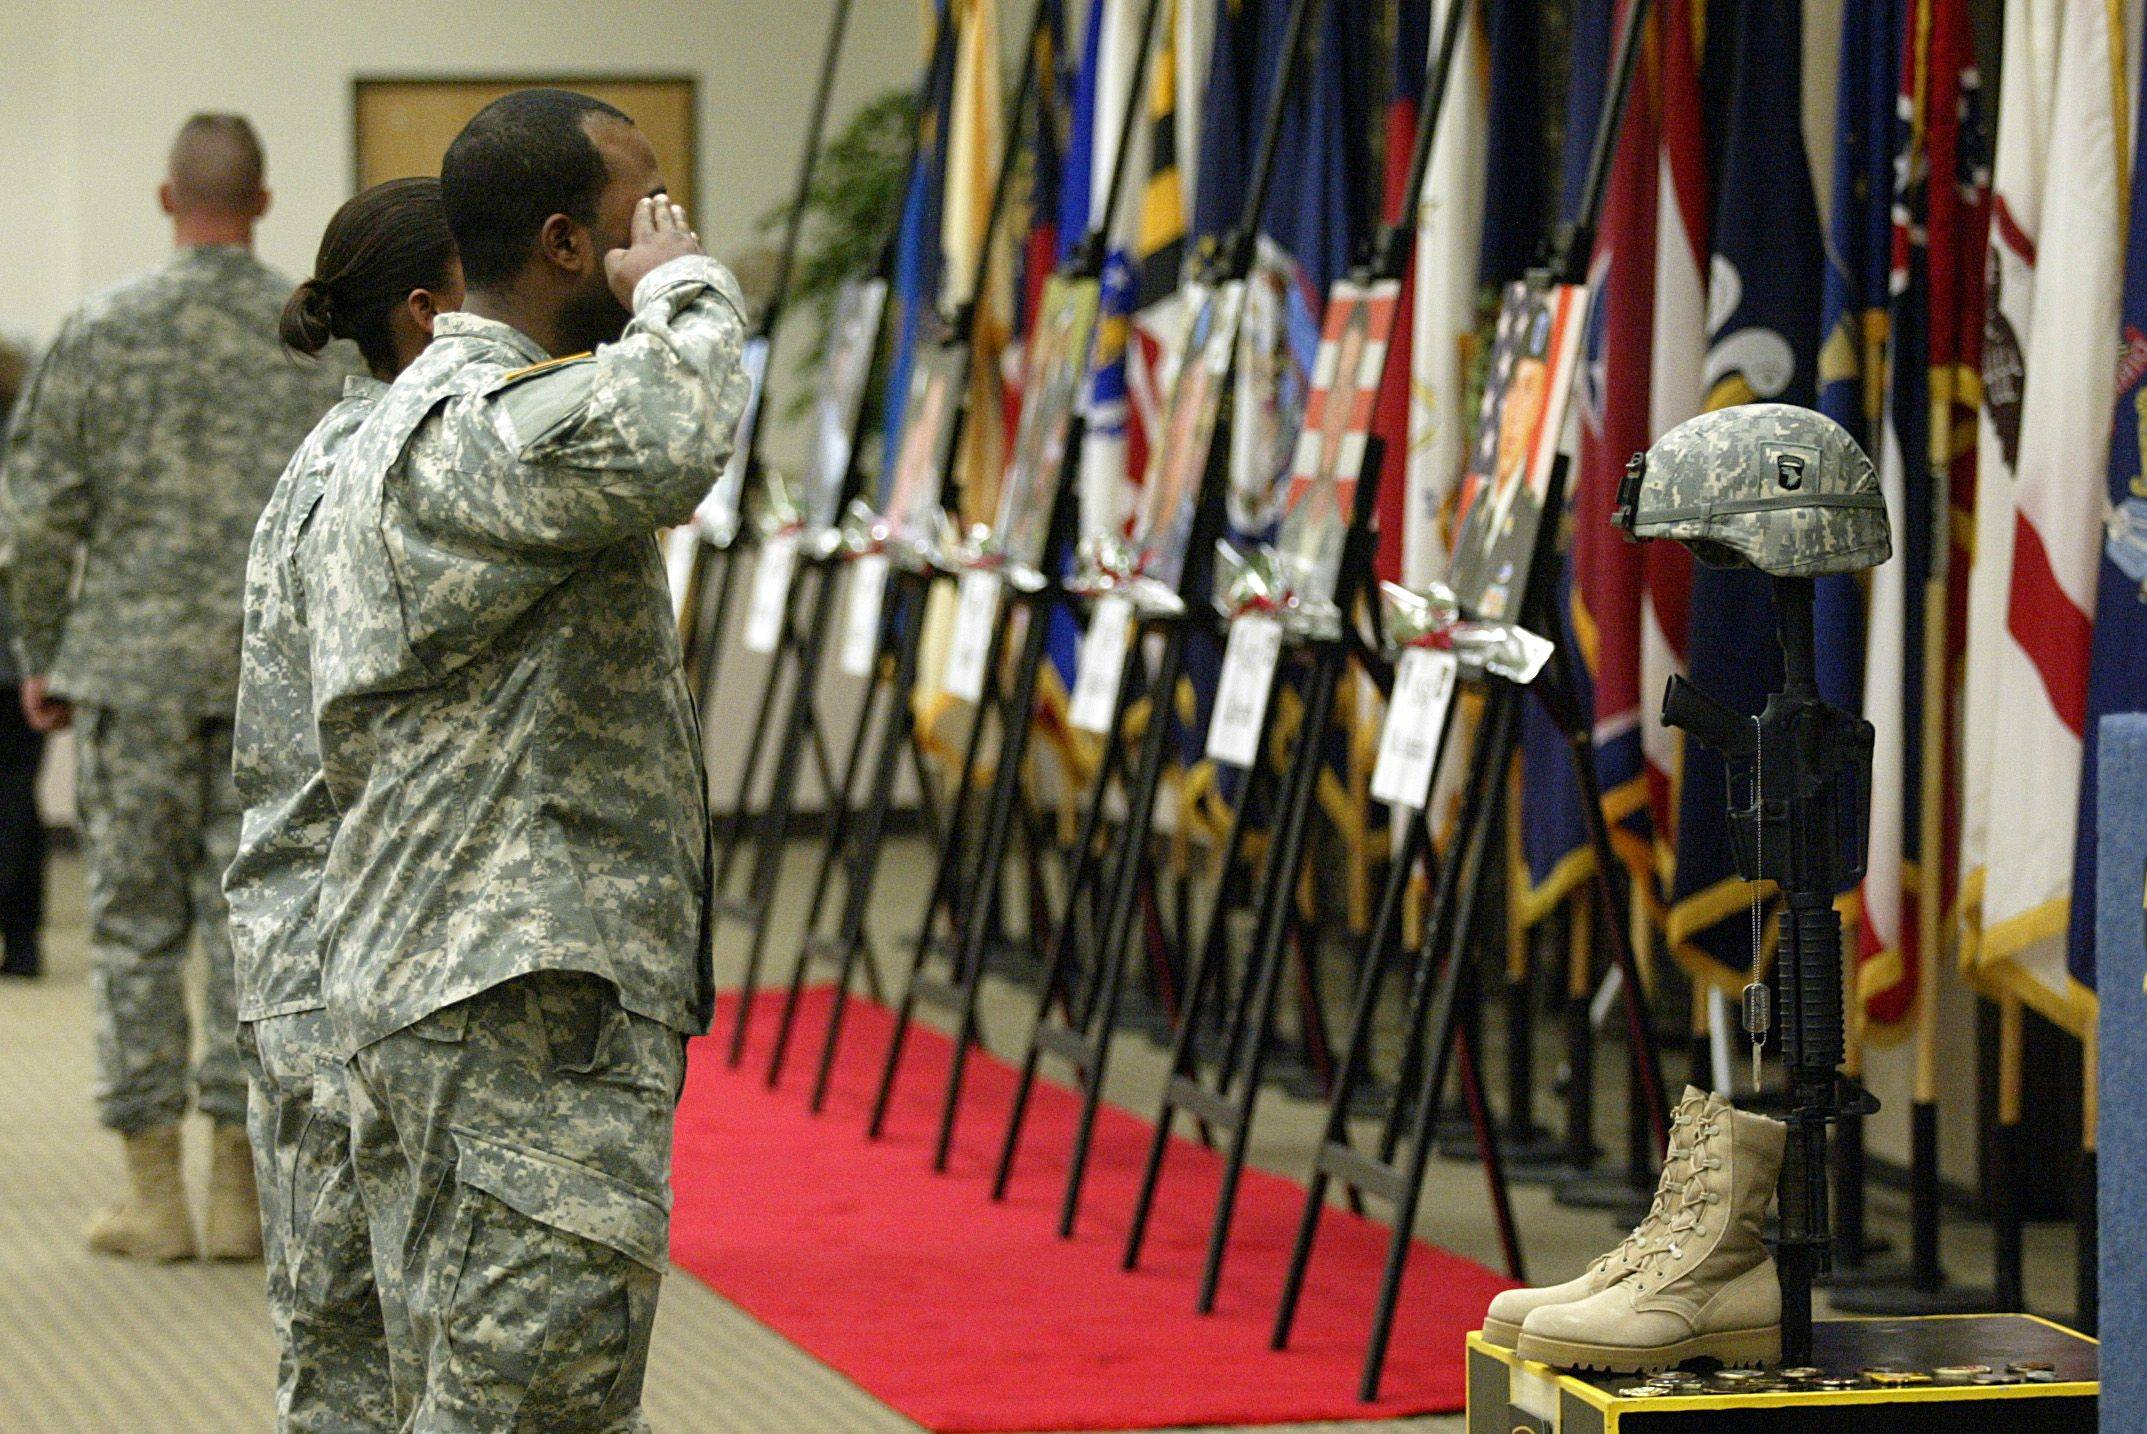 On Dec. 8, soldiers paid their final respects to 13 fallen soldiers during the monthly Eagle Remembrance Ceremony at the Family Resource Center at Fort Campbell, Ky. The famed 101st Airborne Division shows the scars of the U.S. surge in Afghanistan.